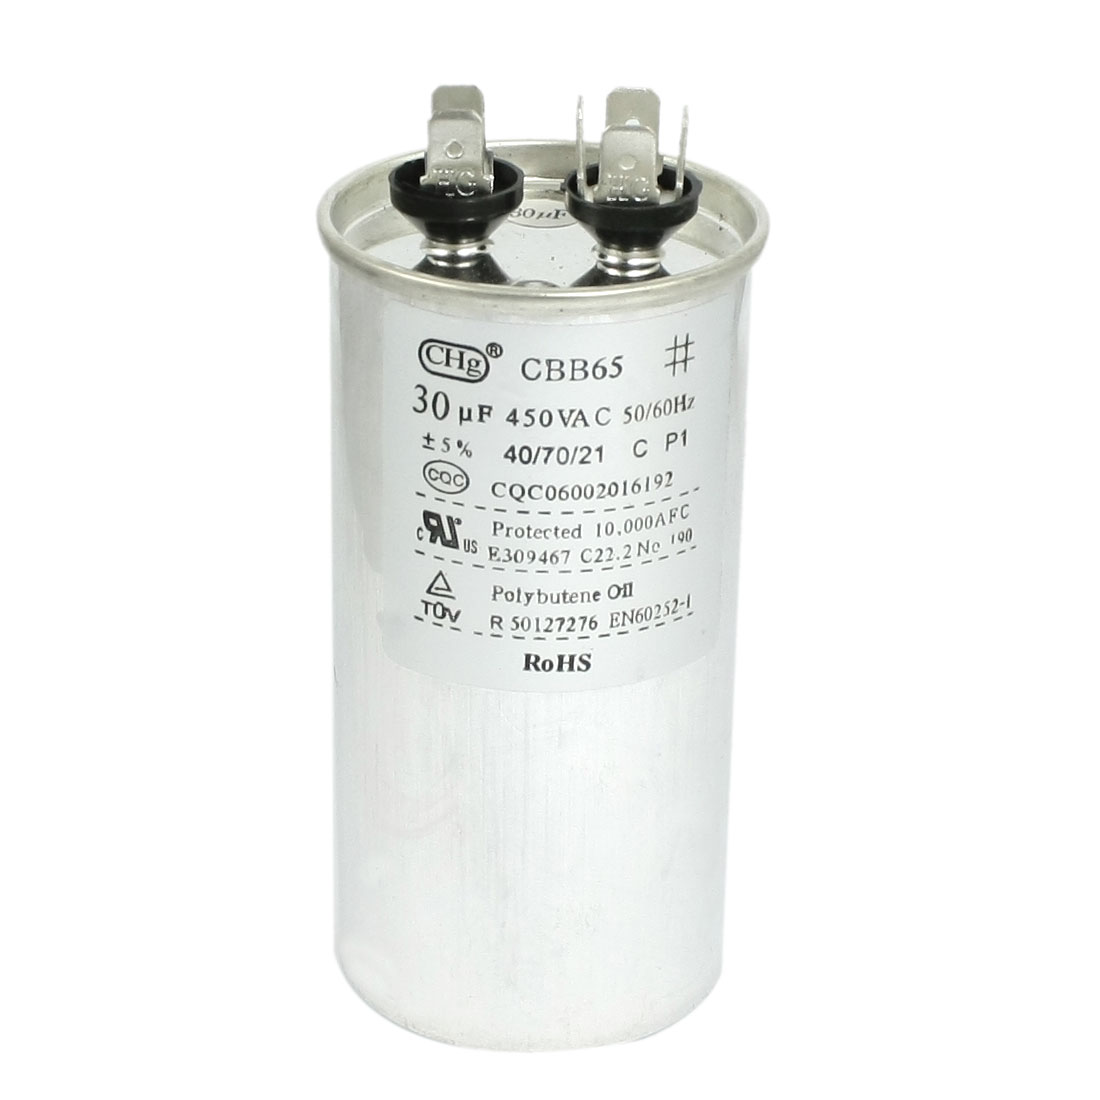 450VAC 30uF CBB65 Air Conditioner Motor Capacitor